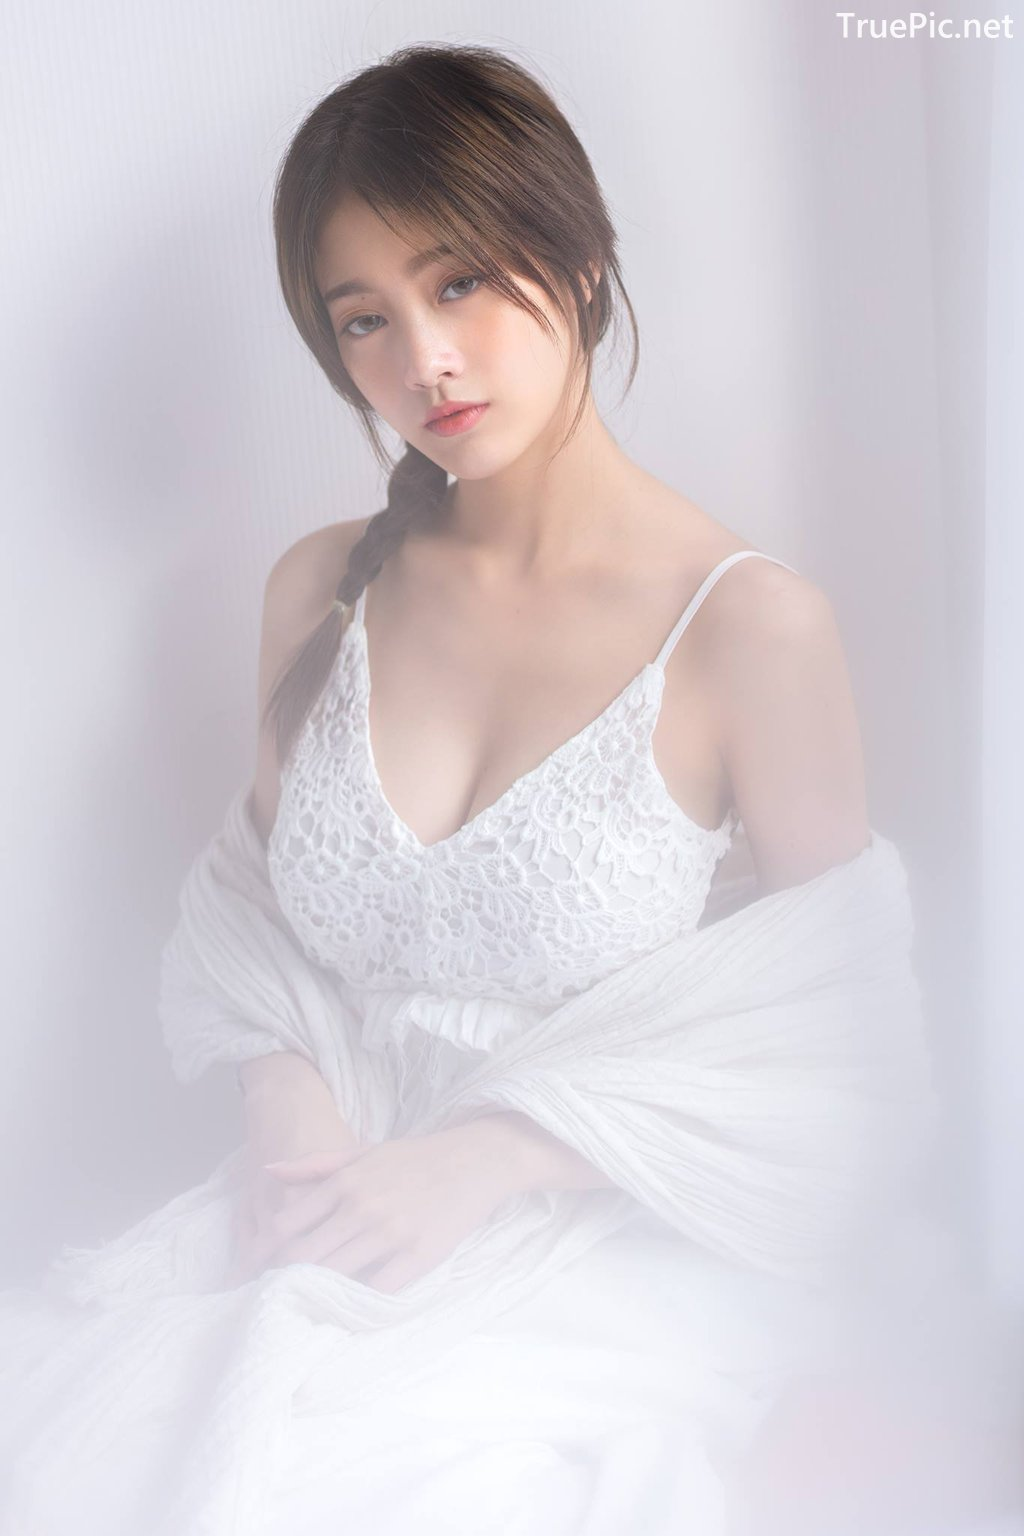 Image Thailand Model - Pimploy Chitranapawong - Beautiful In White - TruePic.net - Picture-7